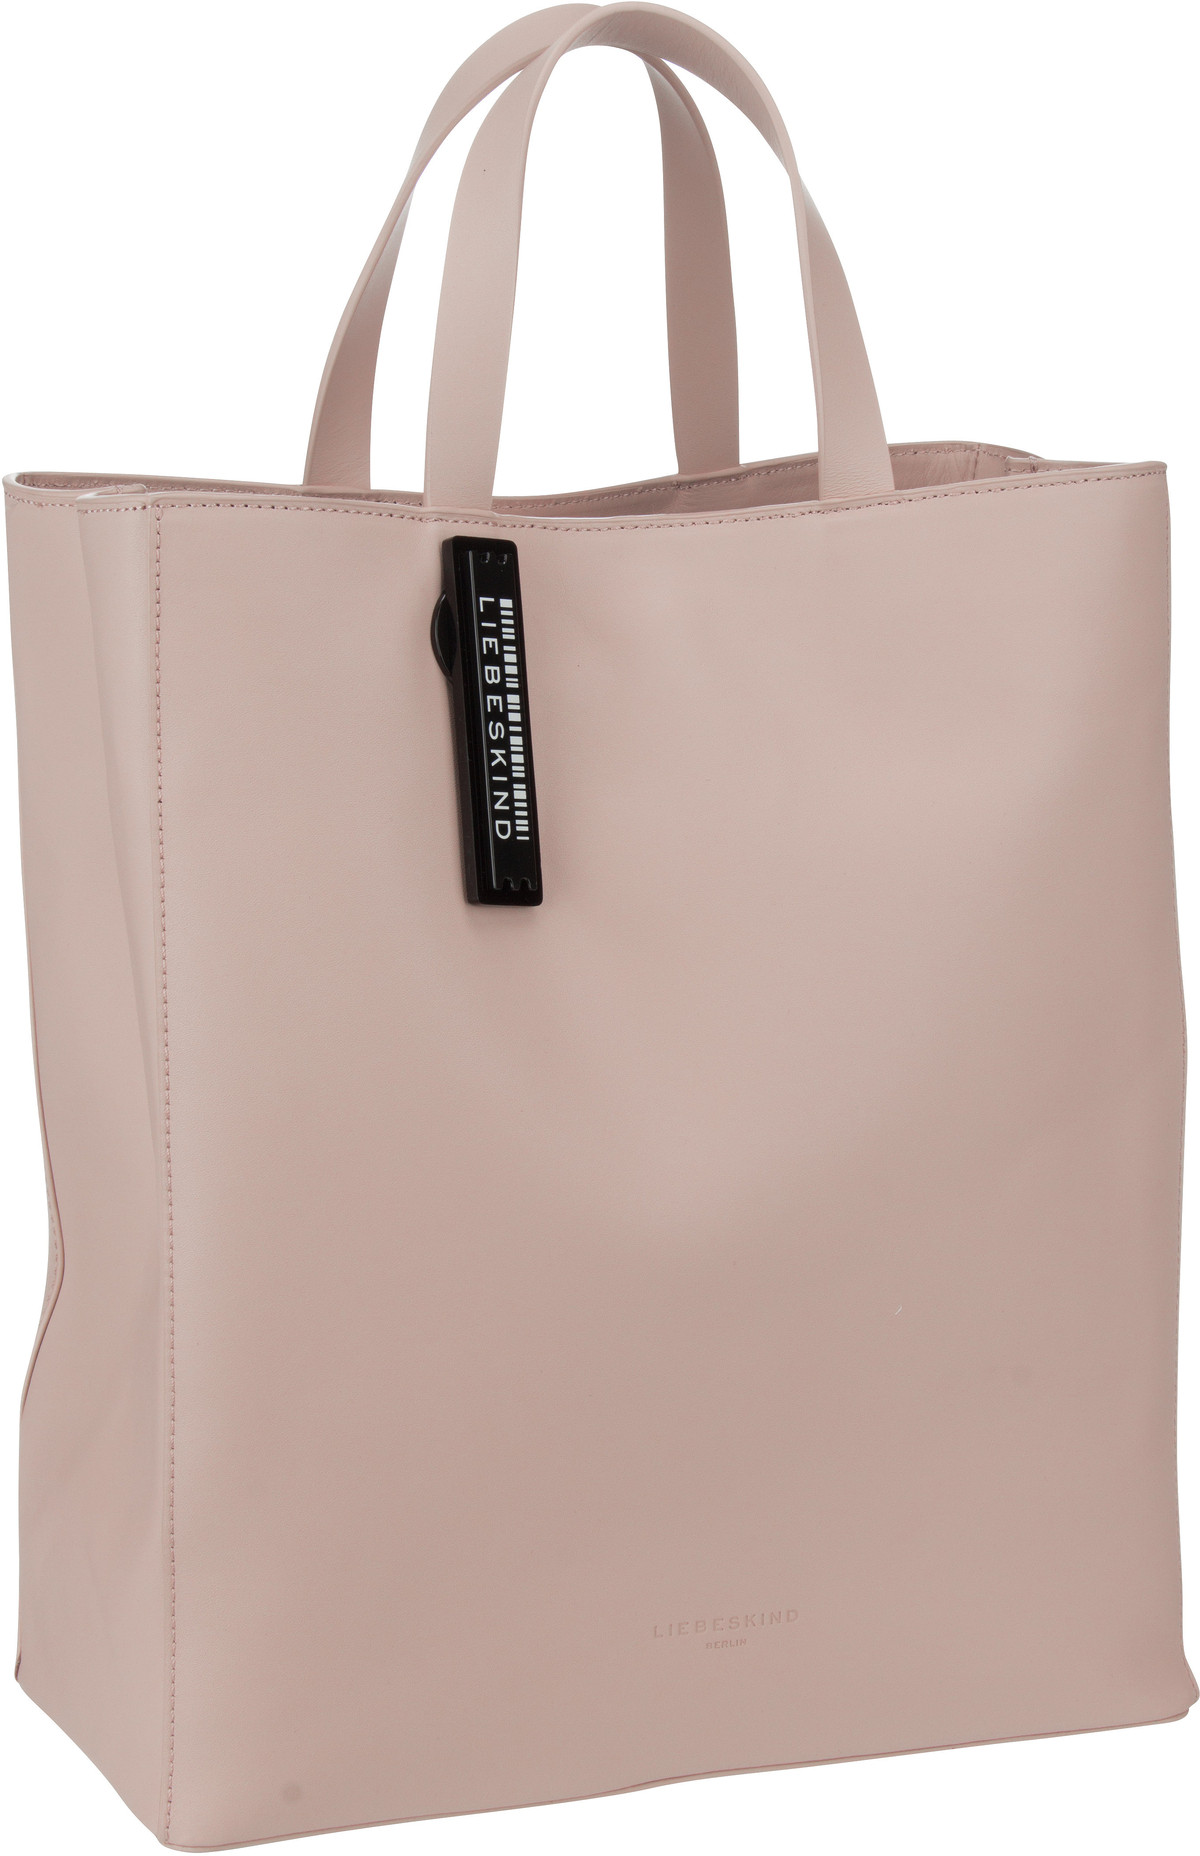 Berlin Handtasche Paper Bag Tote M Dusty Rose